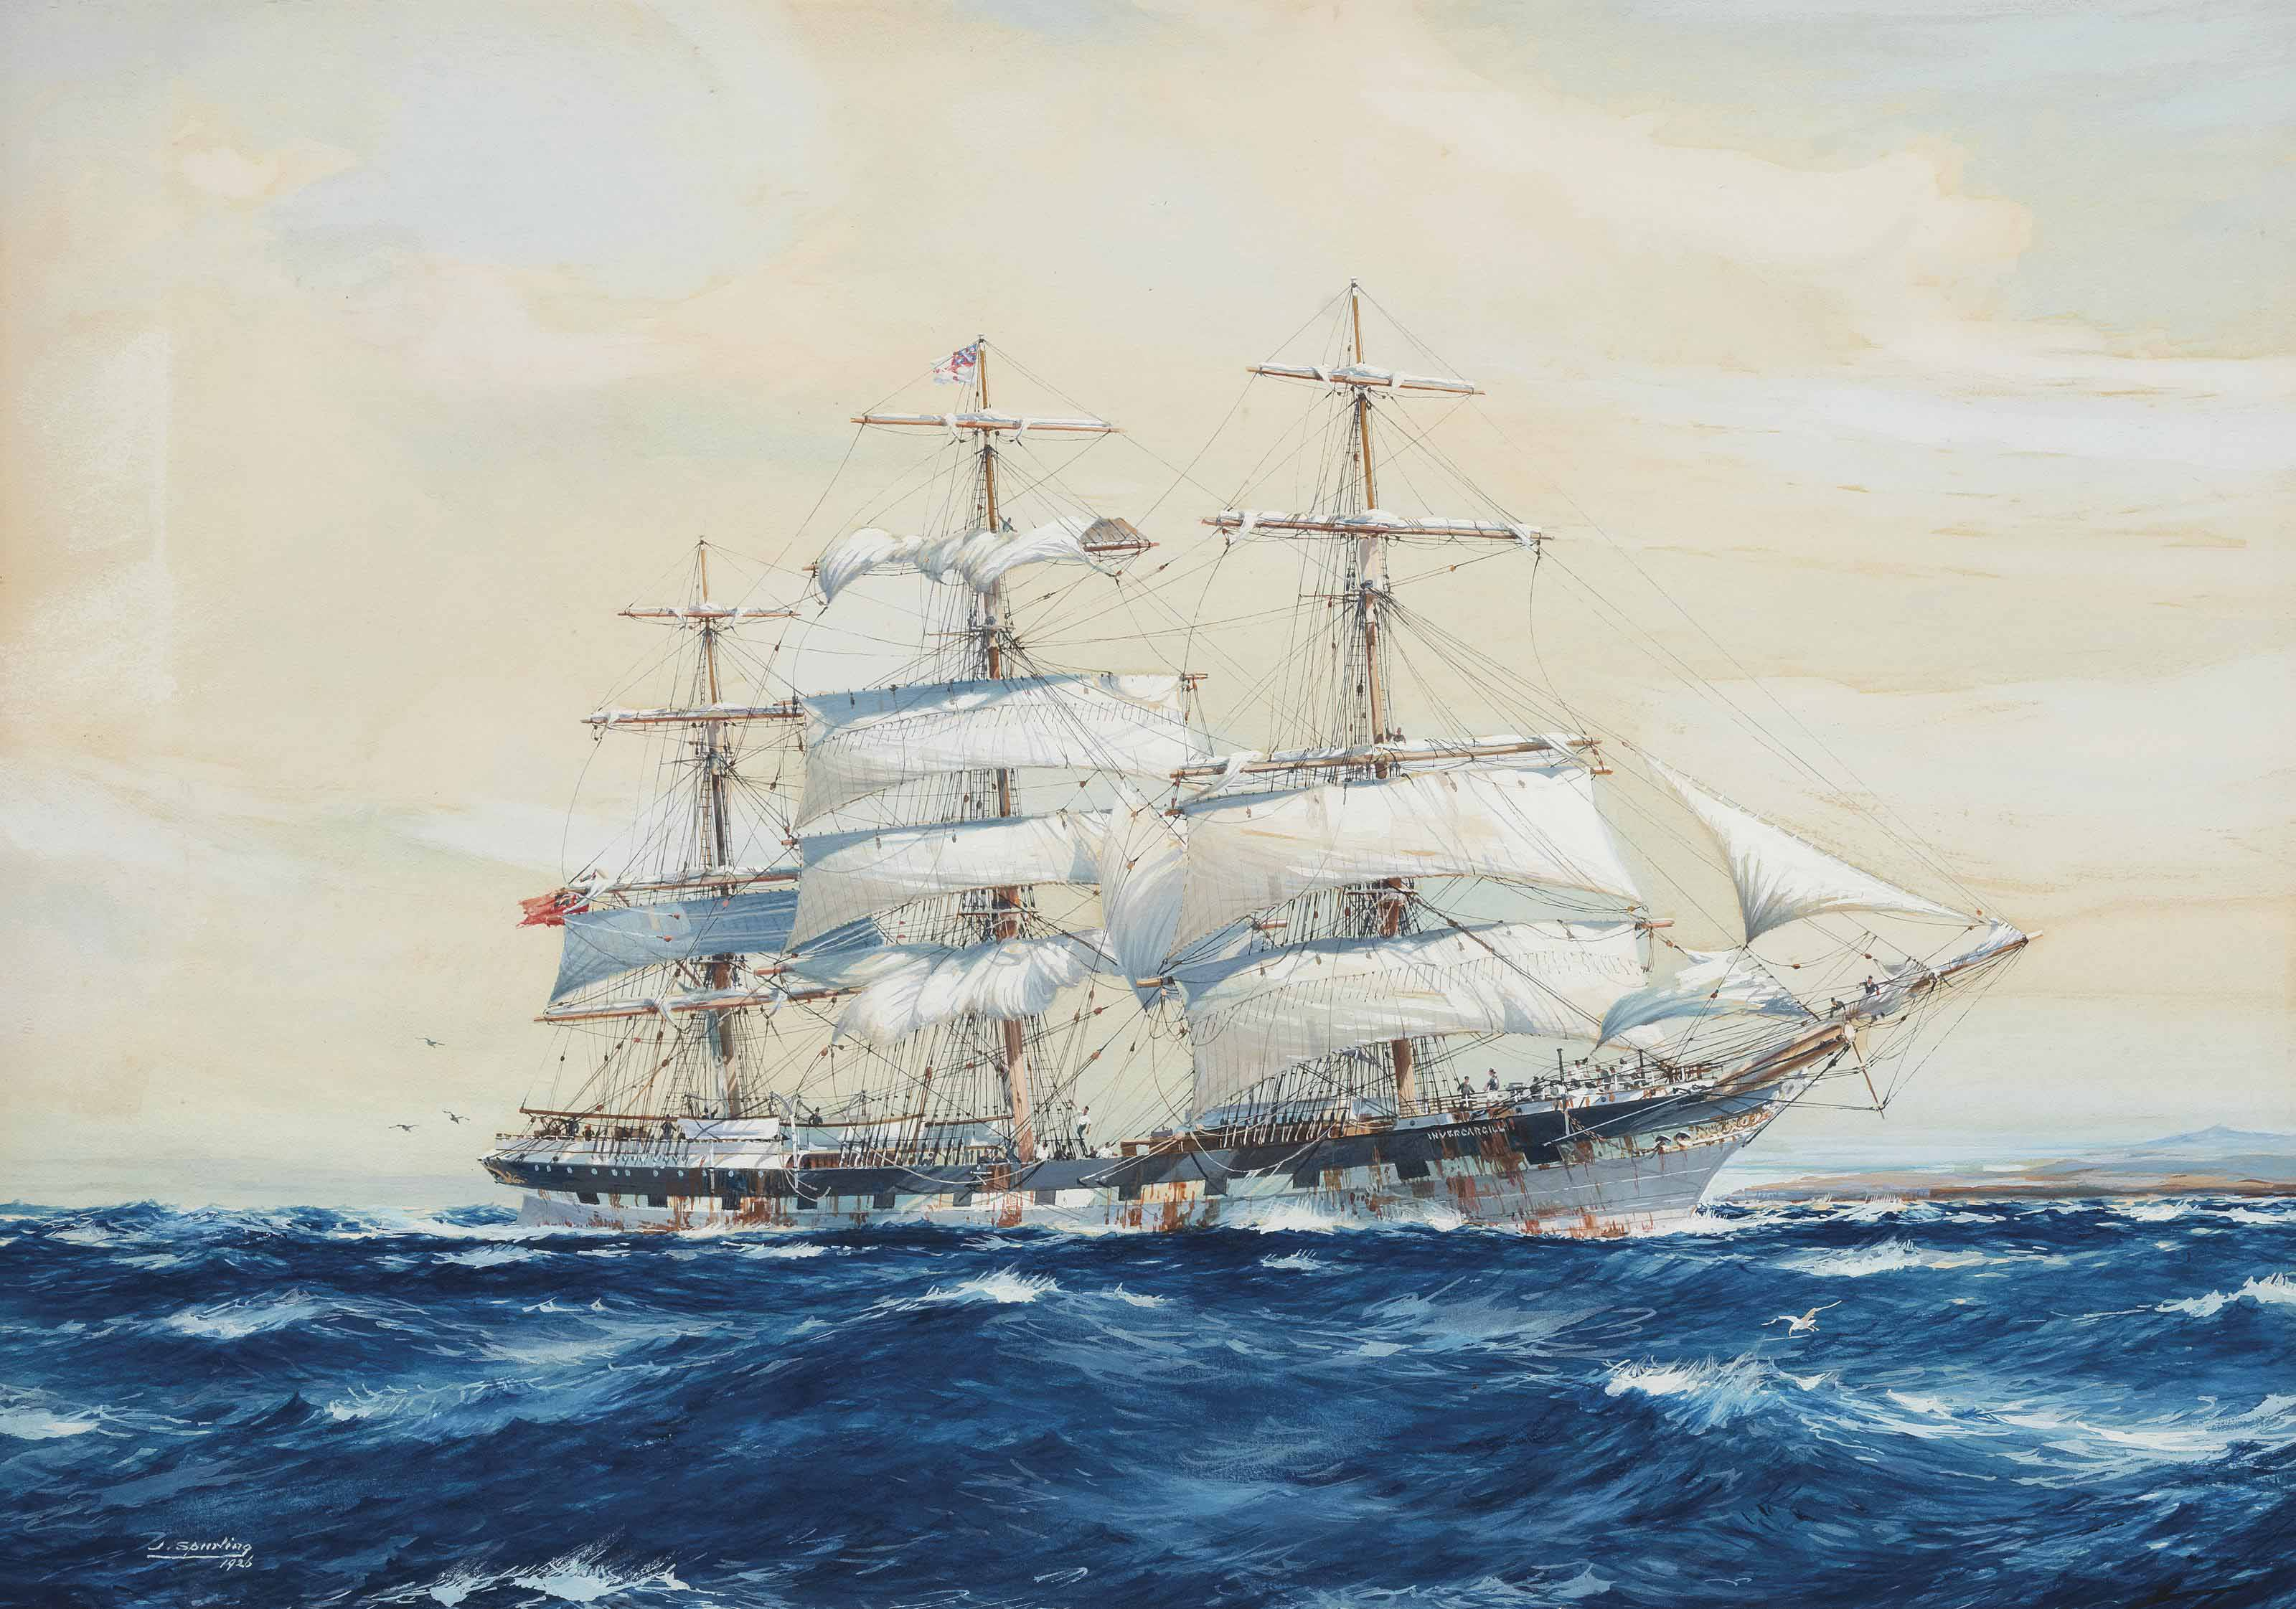 The emigrant ship Invercargill off Fairoa Head, New Zealand